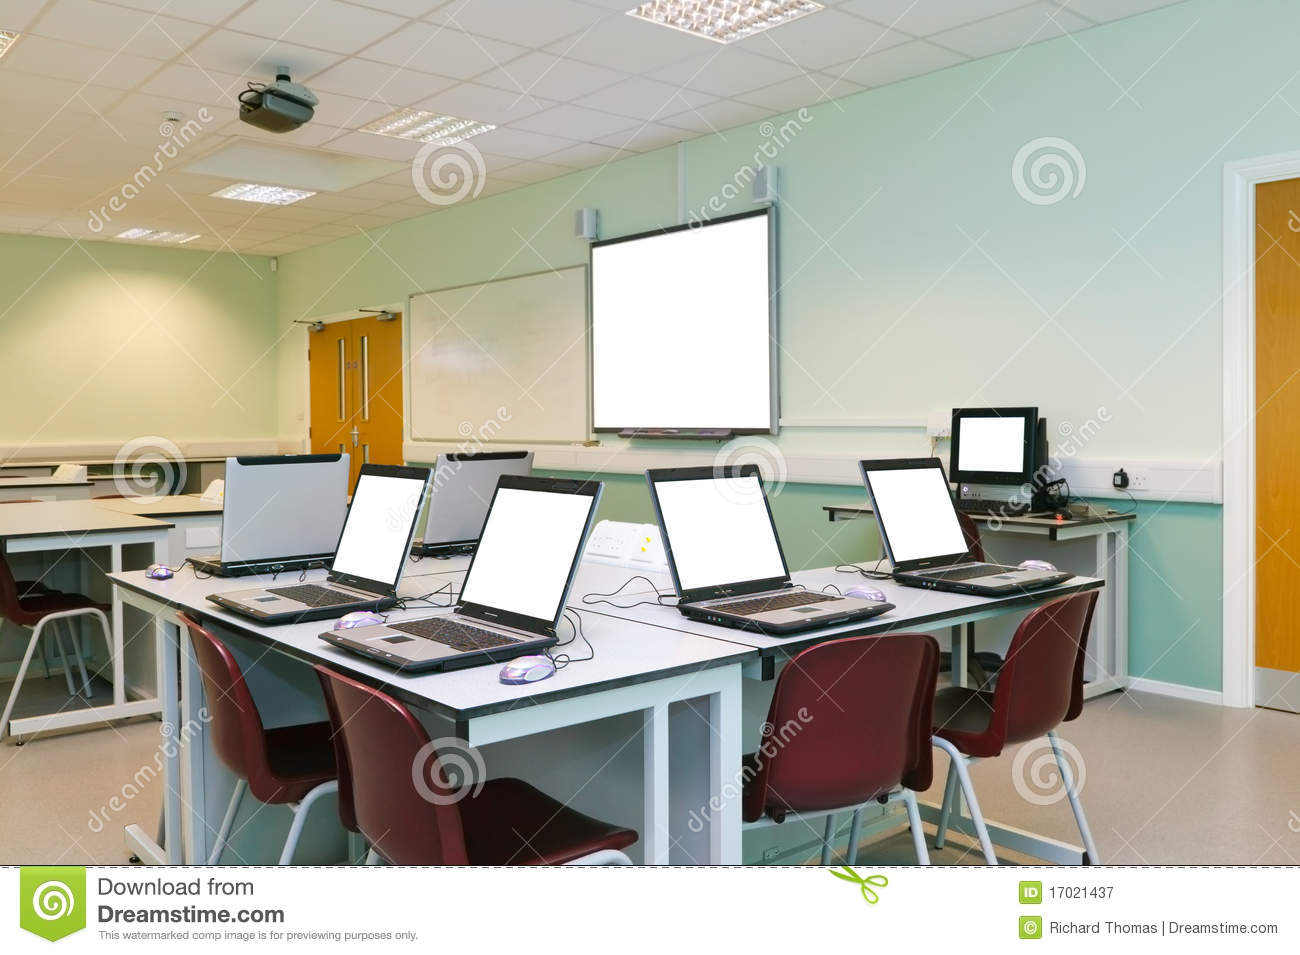 It Classroom Blank Computer Screens Royalty Free Stock